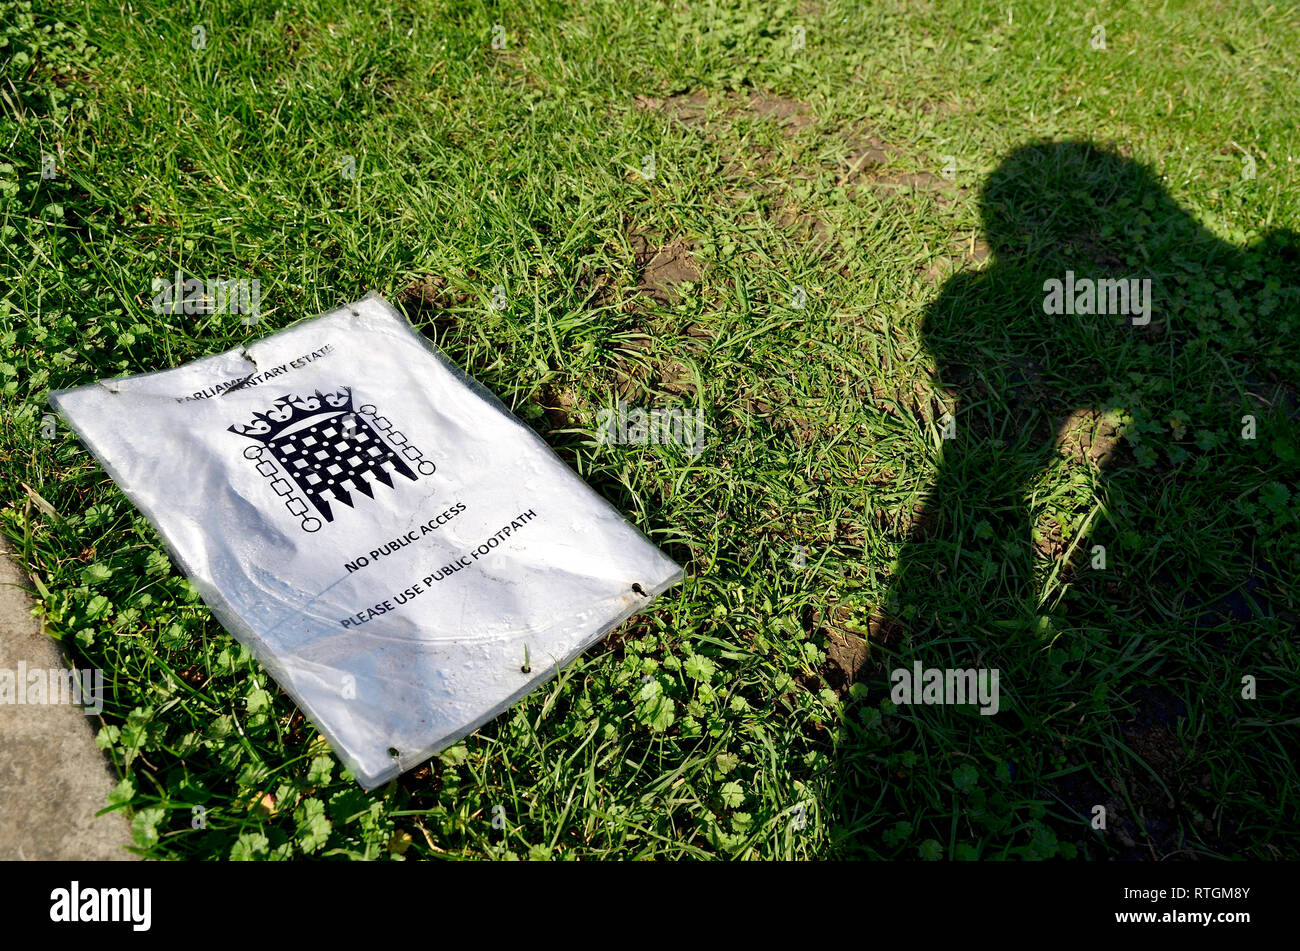 London, England, UK. Discarded sign on College Green, Westminster 'Parliamentary Estate - No Public Access - Please Use Public Footpath' on the grass - Stock Image